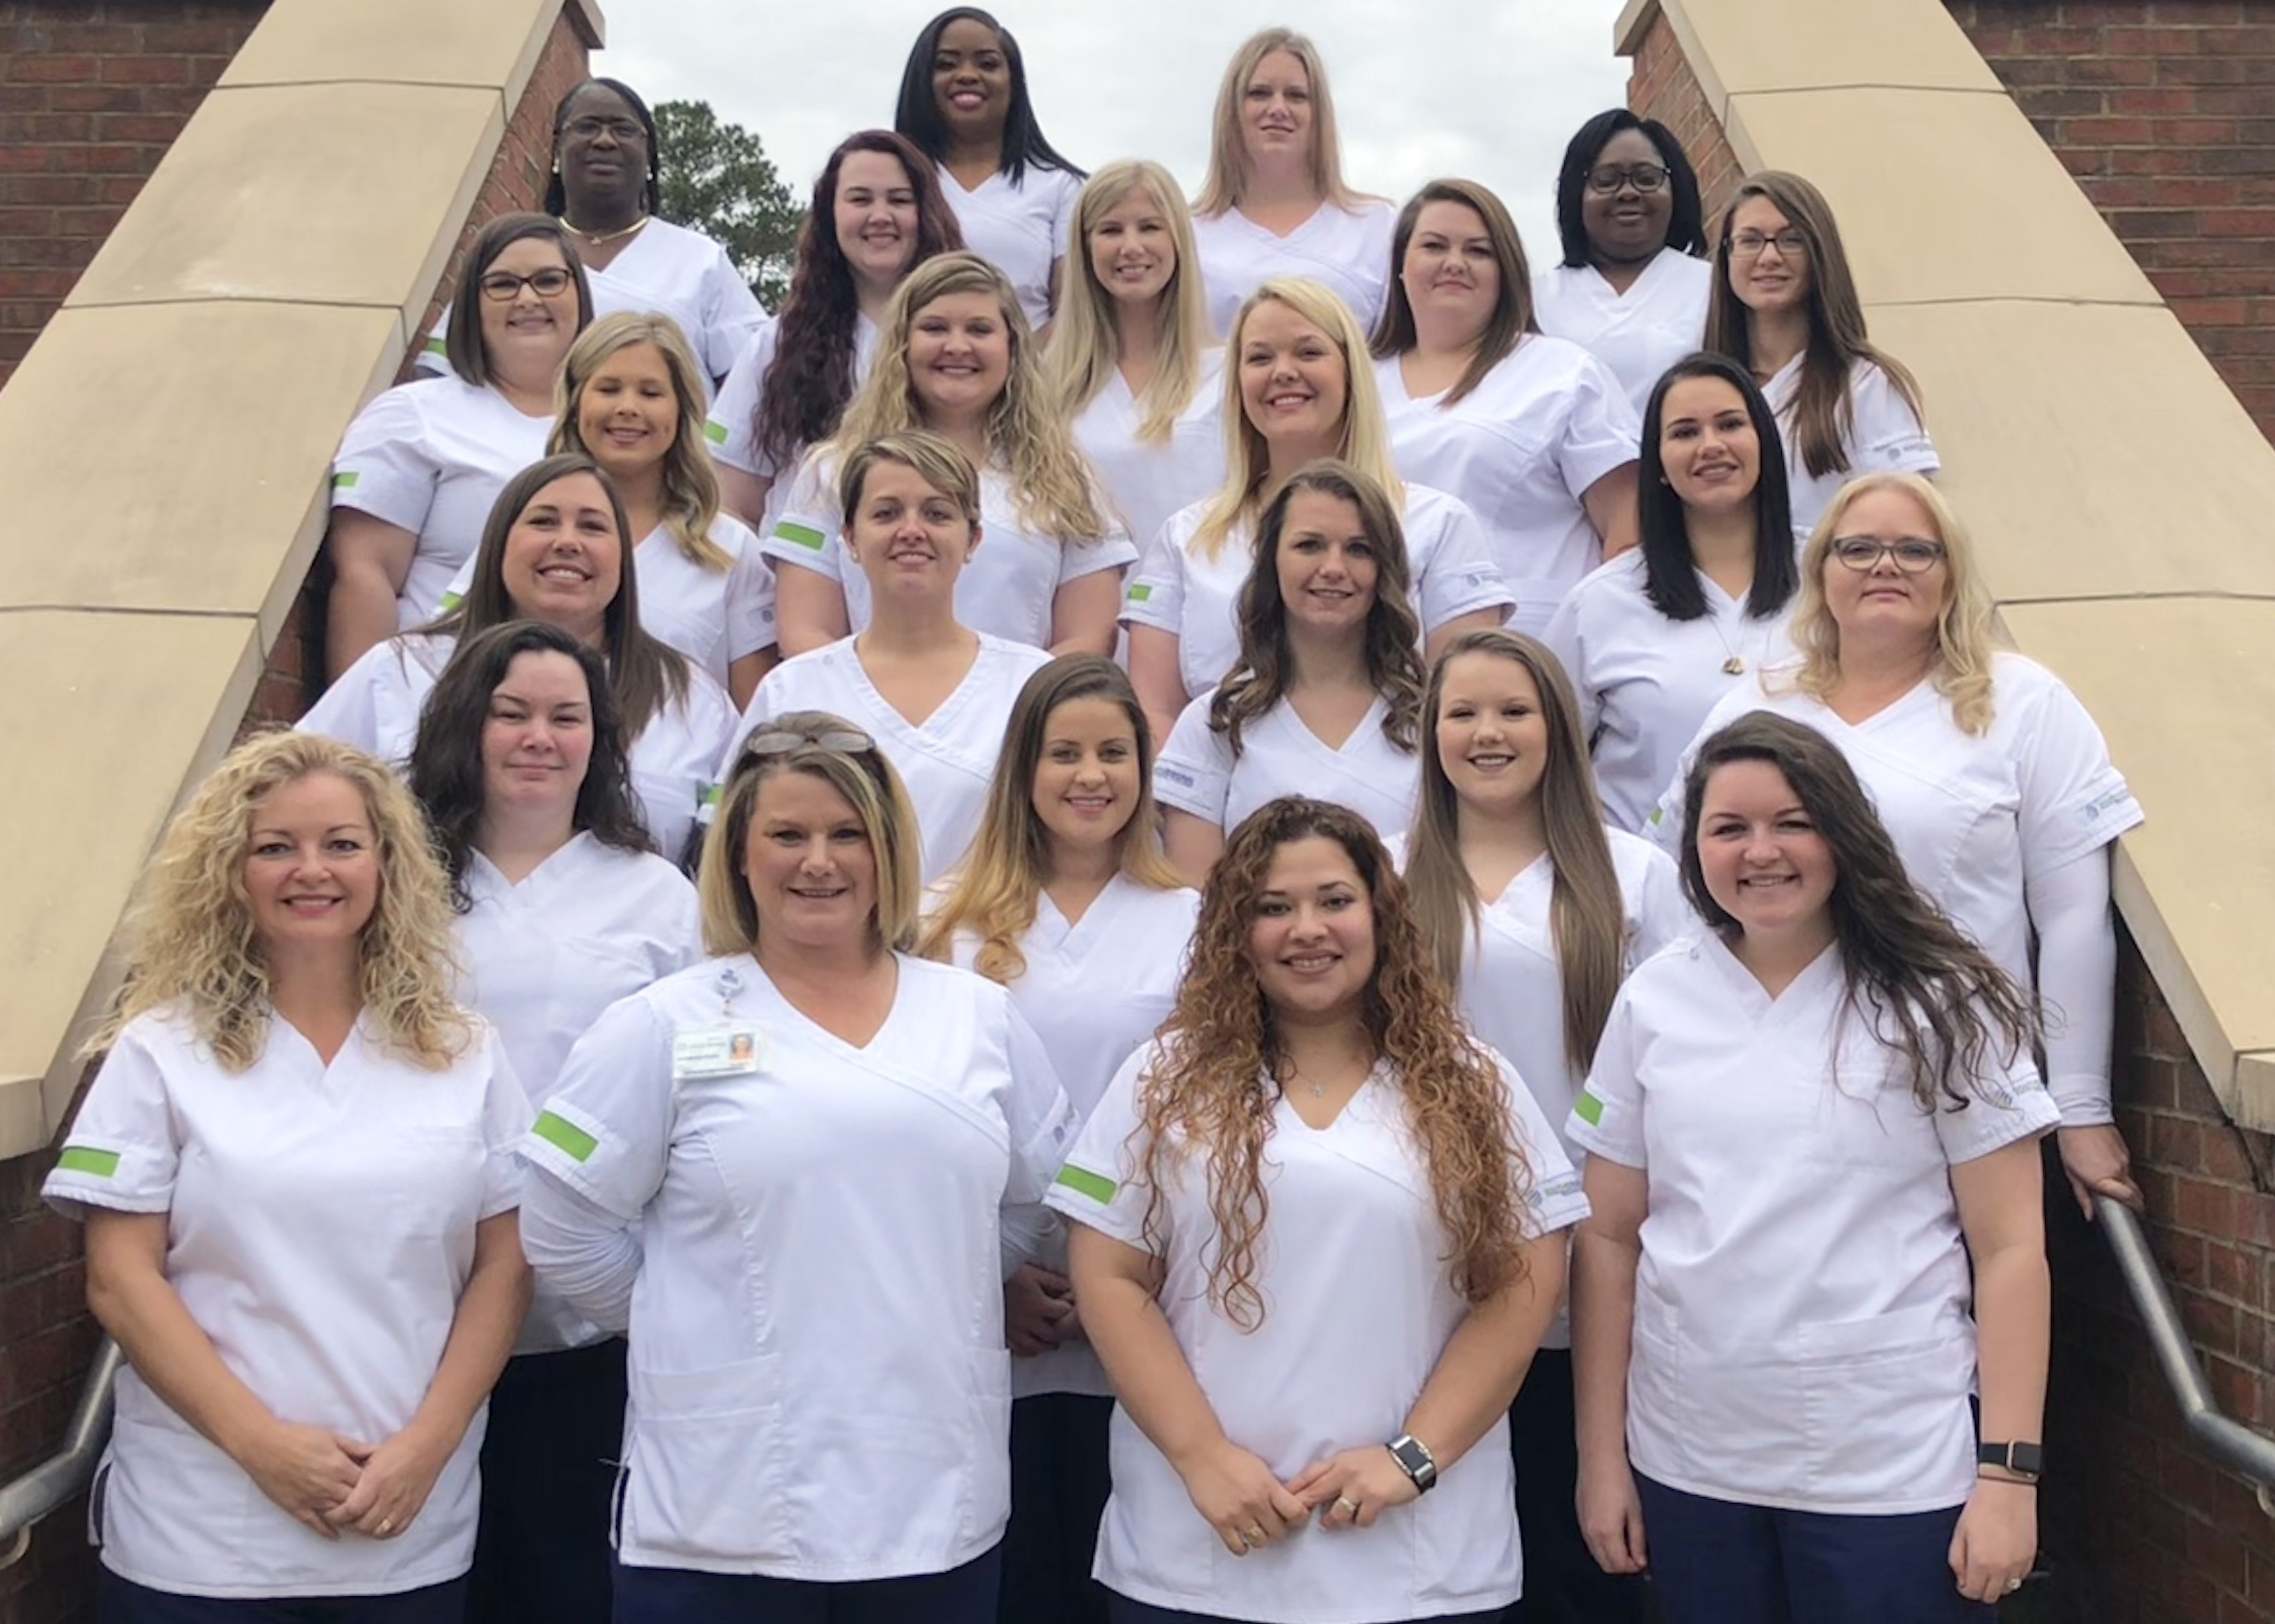 8eb40965e3317 On December 13th, Southern Regional Technical College (SRTC) held a pinning  ceremony for 25 Associate of Science in Nursing (ASN) students from the LPN  to ...